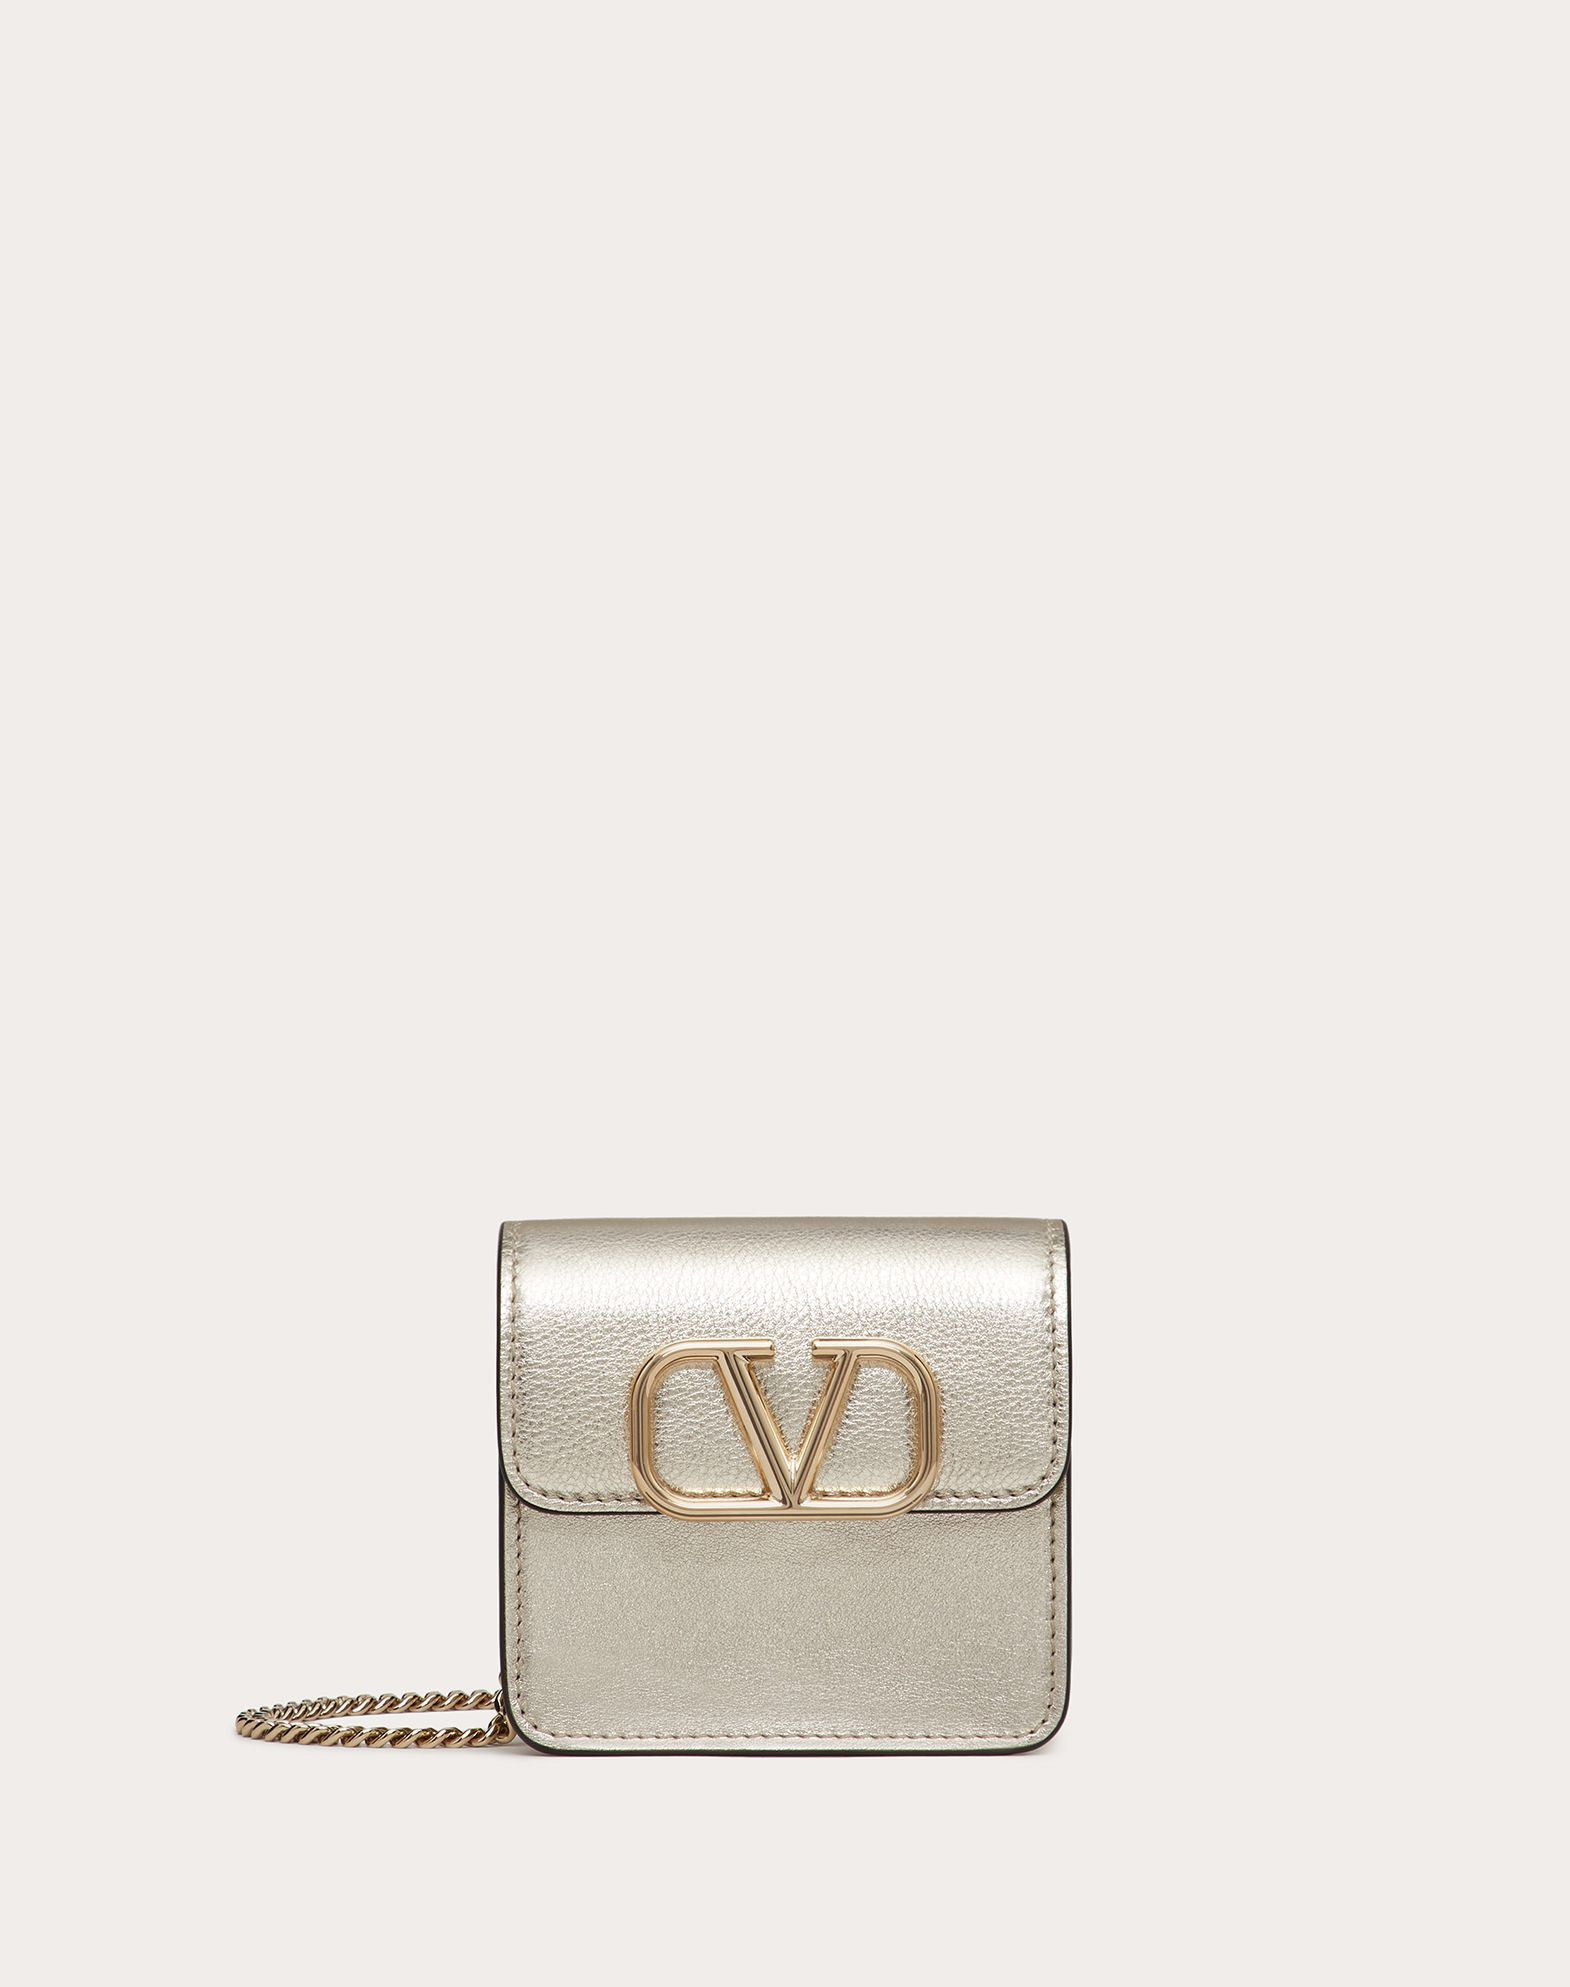 COMPACT VSLING METALLIC CALFSKIN WALLET WITH CHAIN STRAP